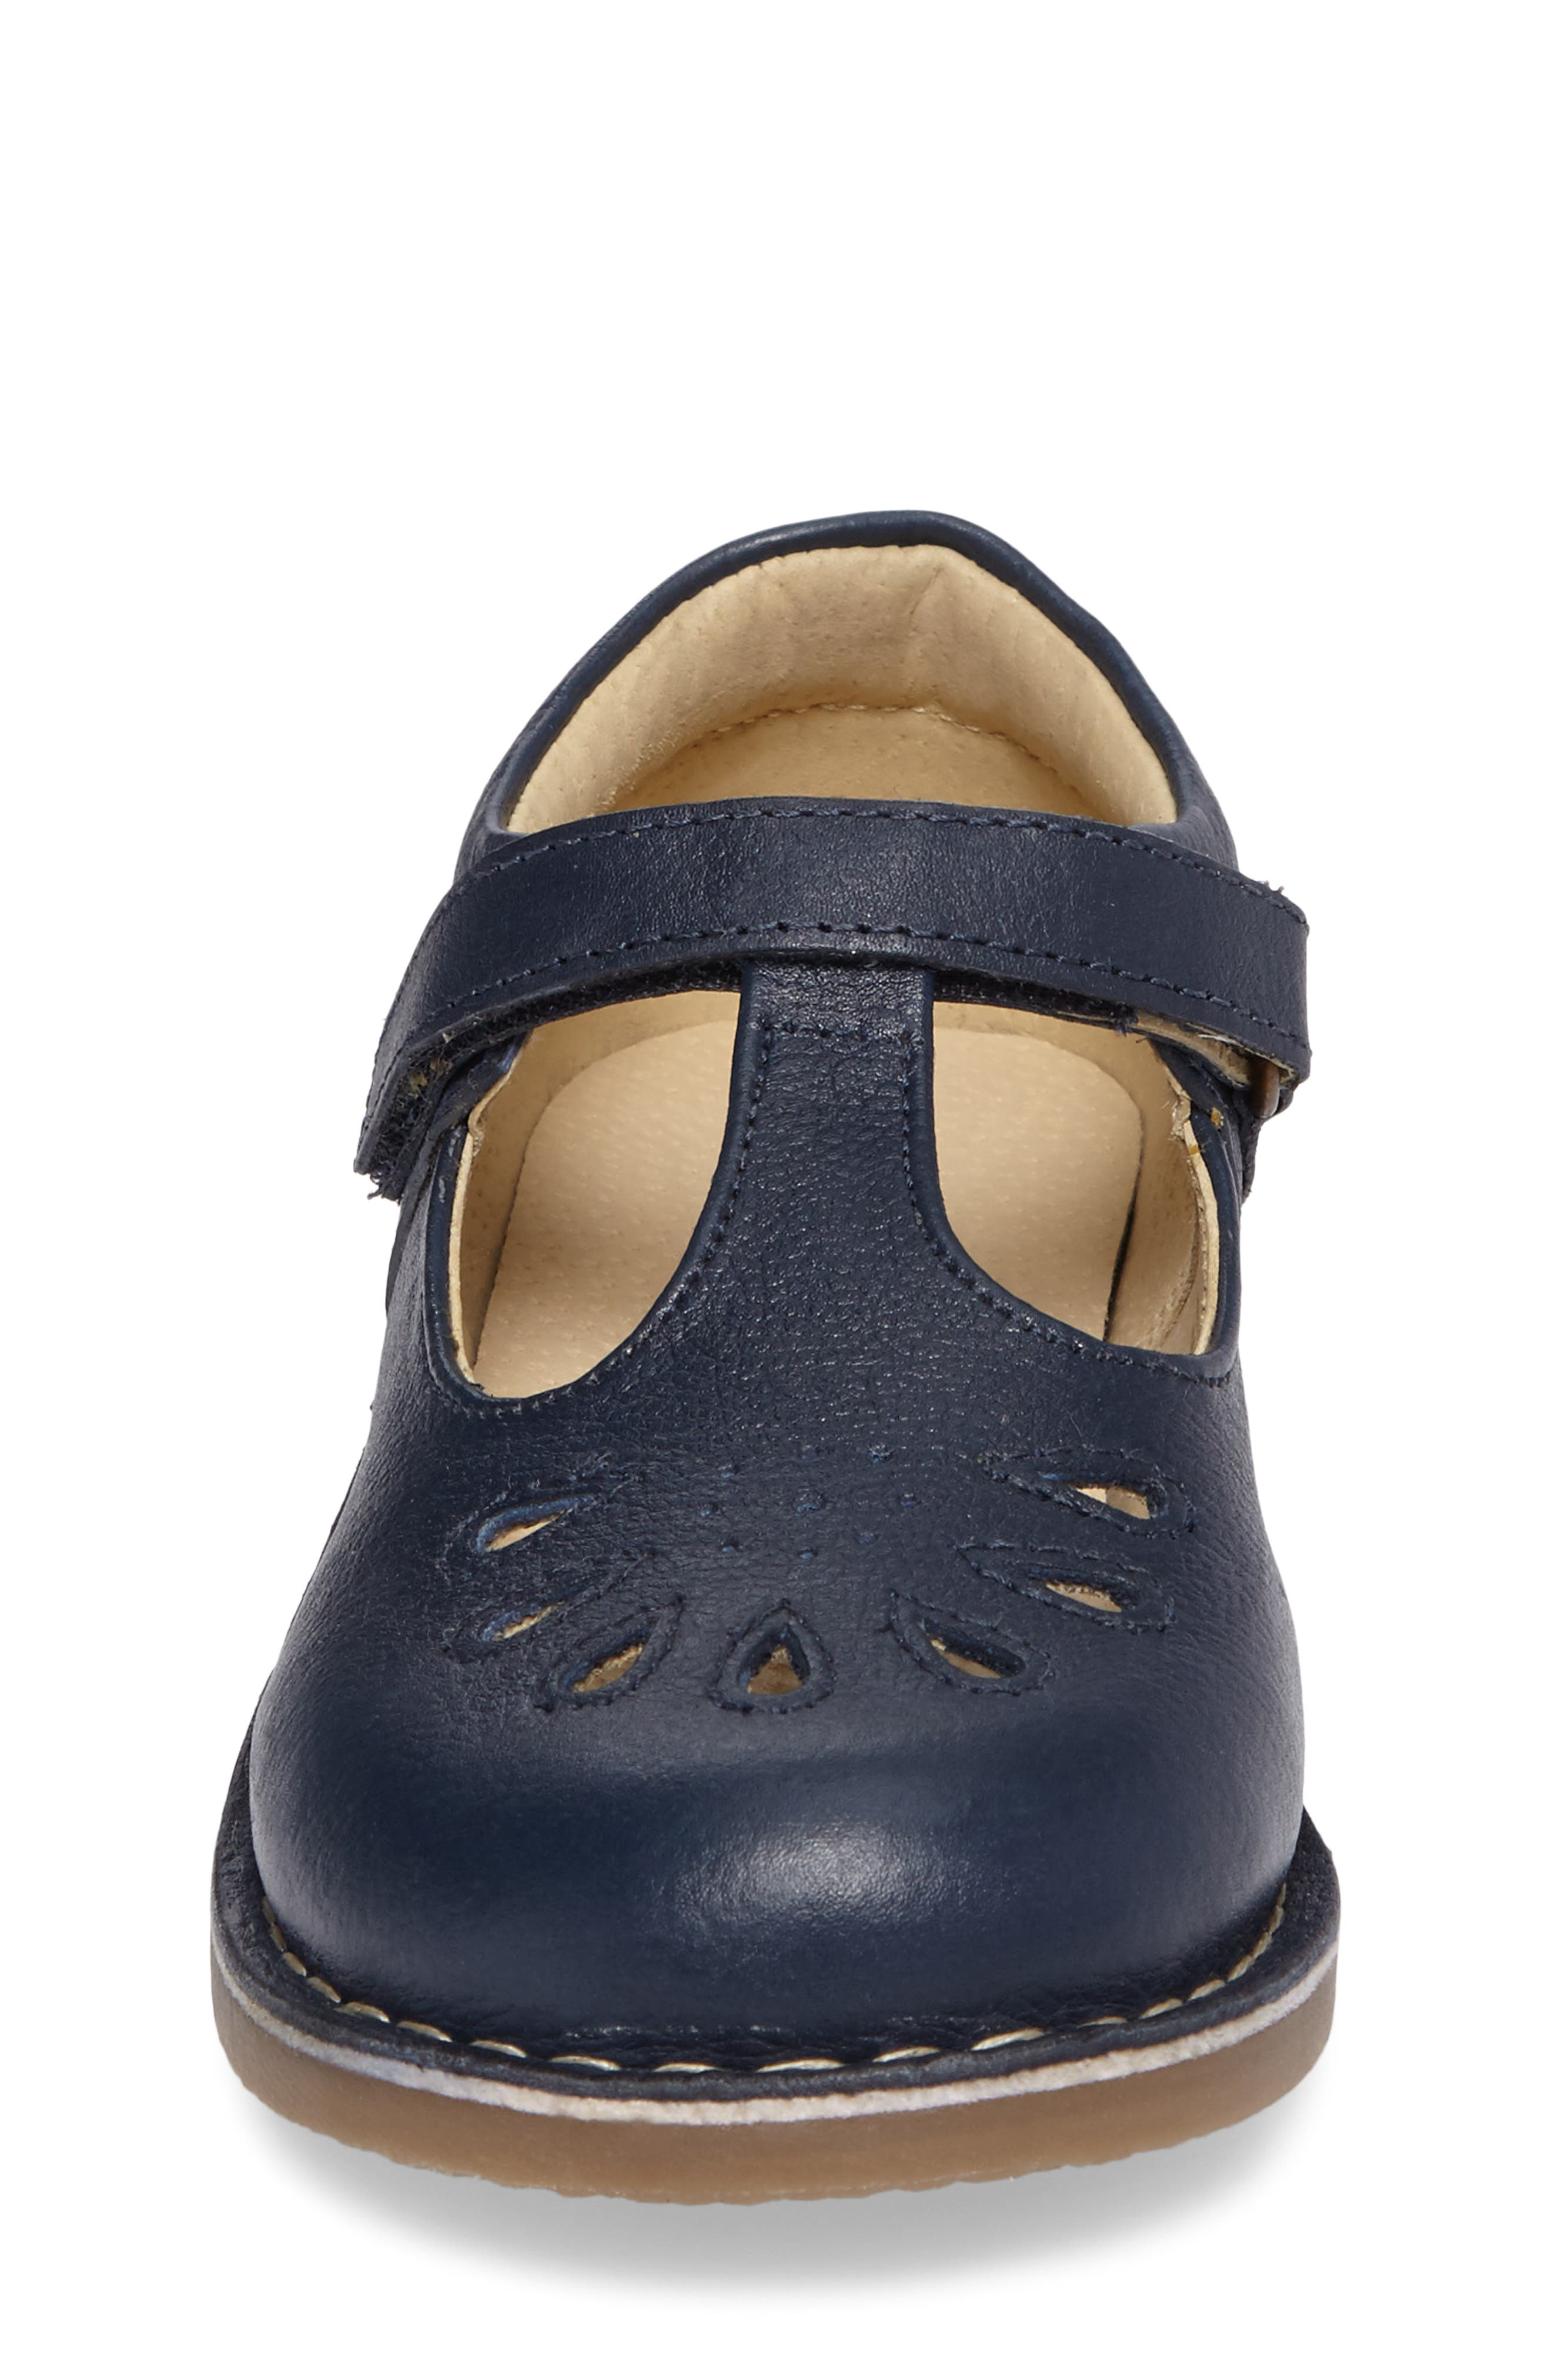 Alternate Image 4  - Mini Boden Perforated T-Strap Mary Jane (Toddler, Little Kid & Big Kid)